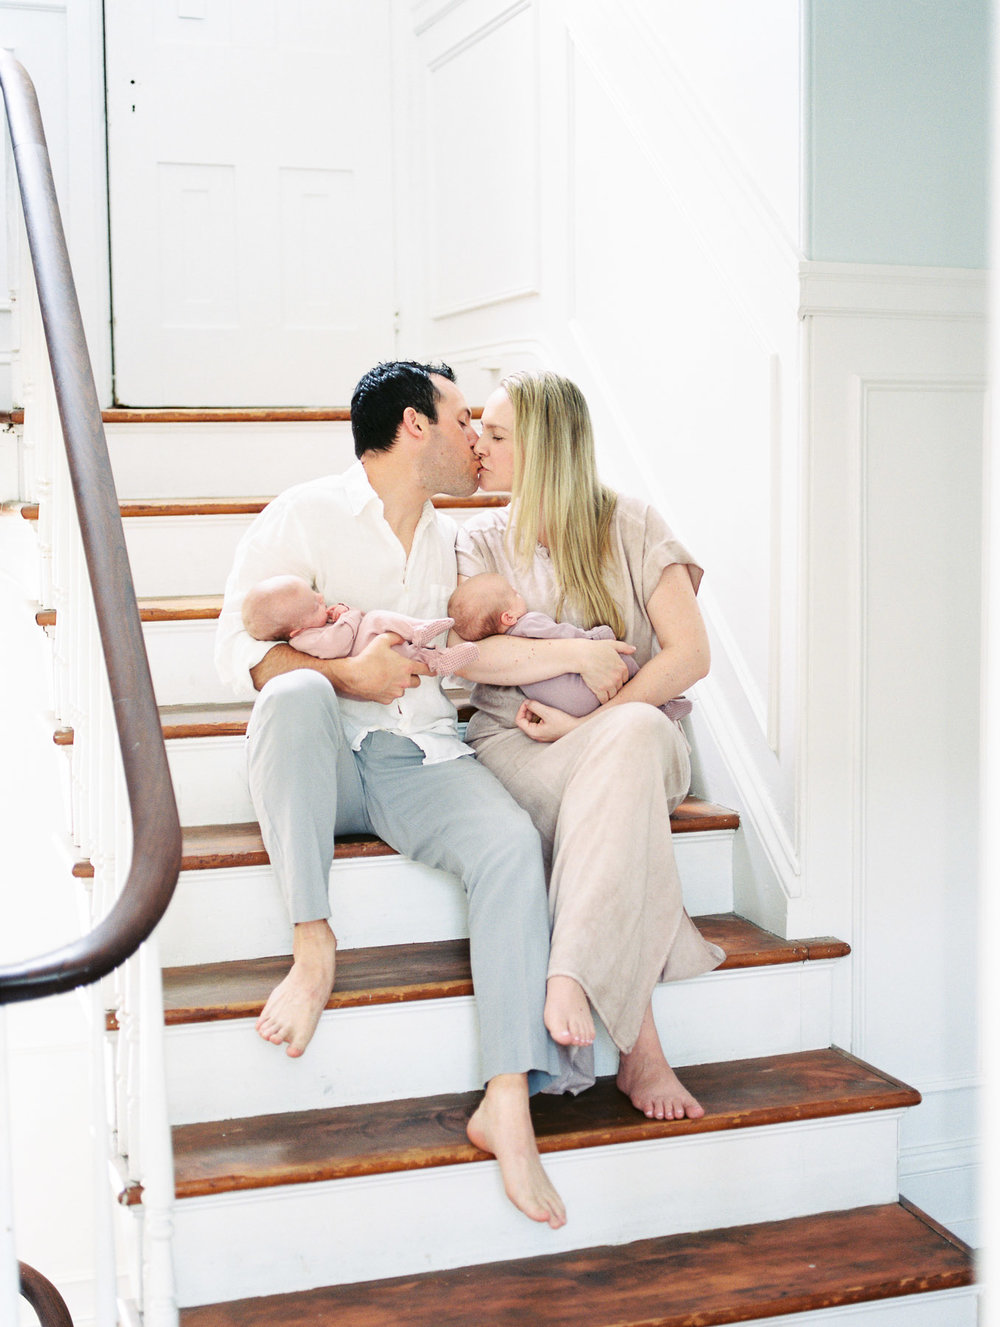 Favorite Photo of Family on Staircase